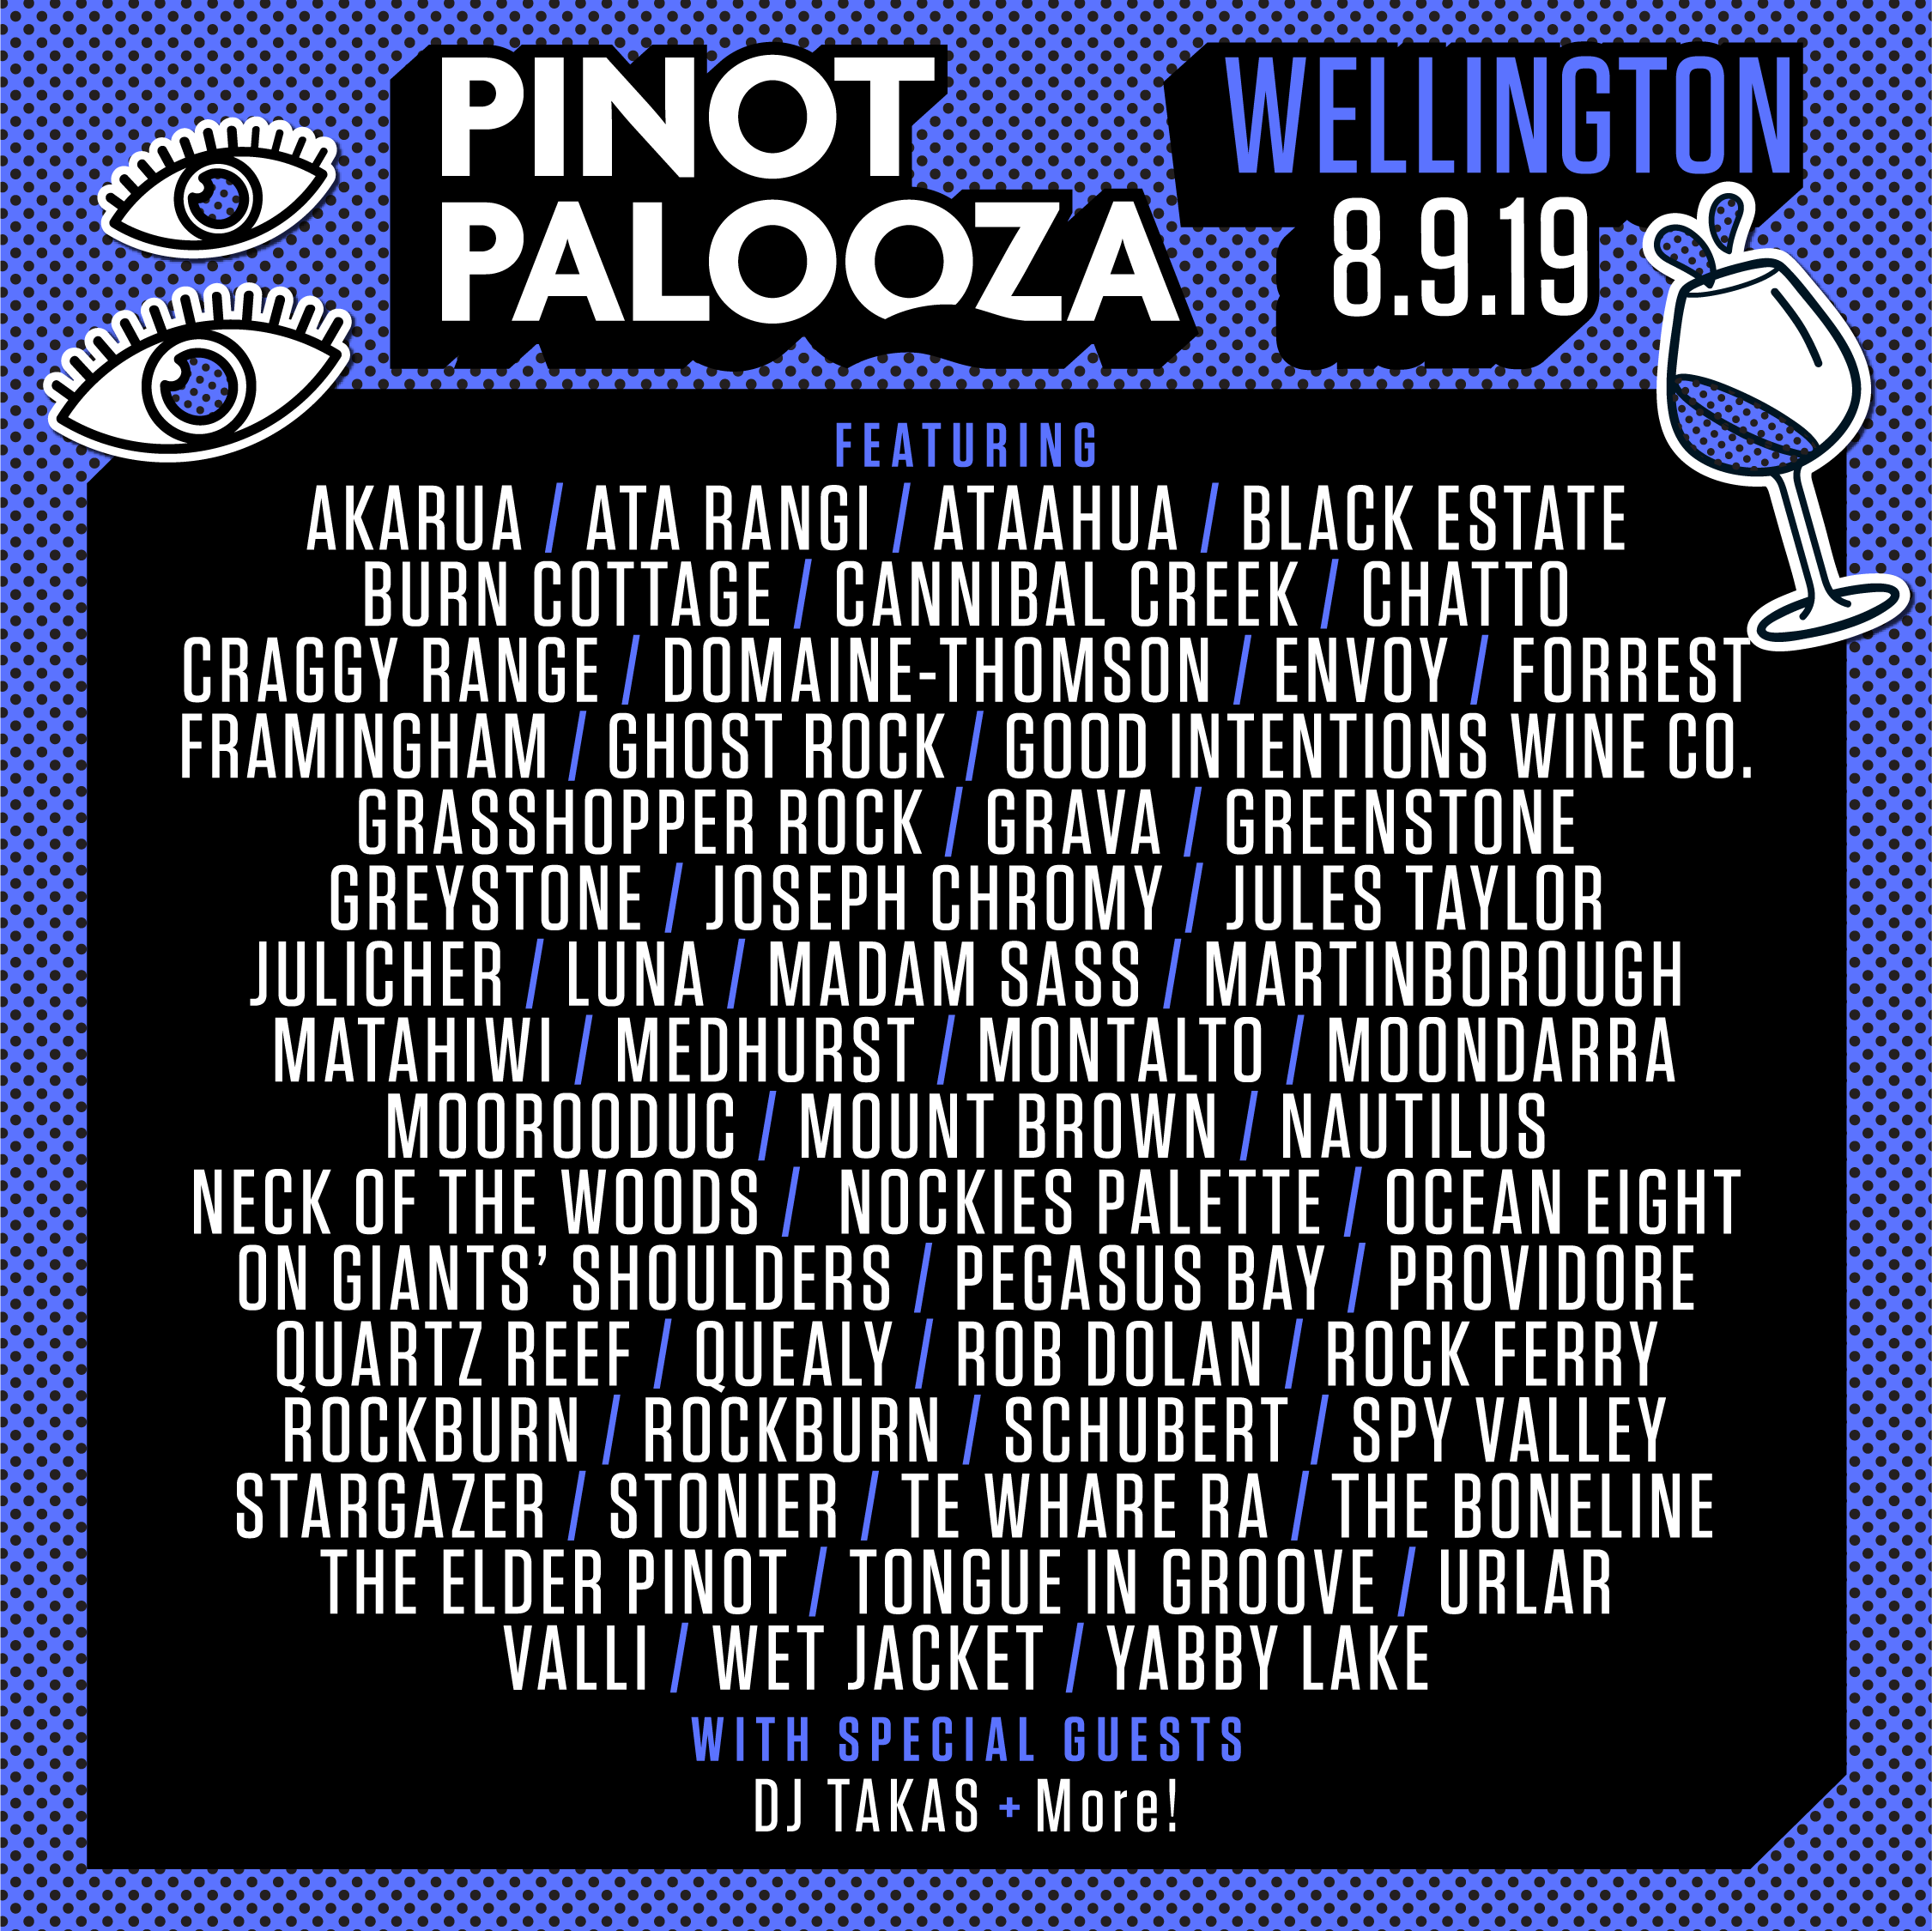 Wellington Line Up 2019